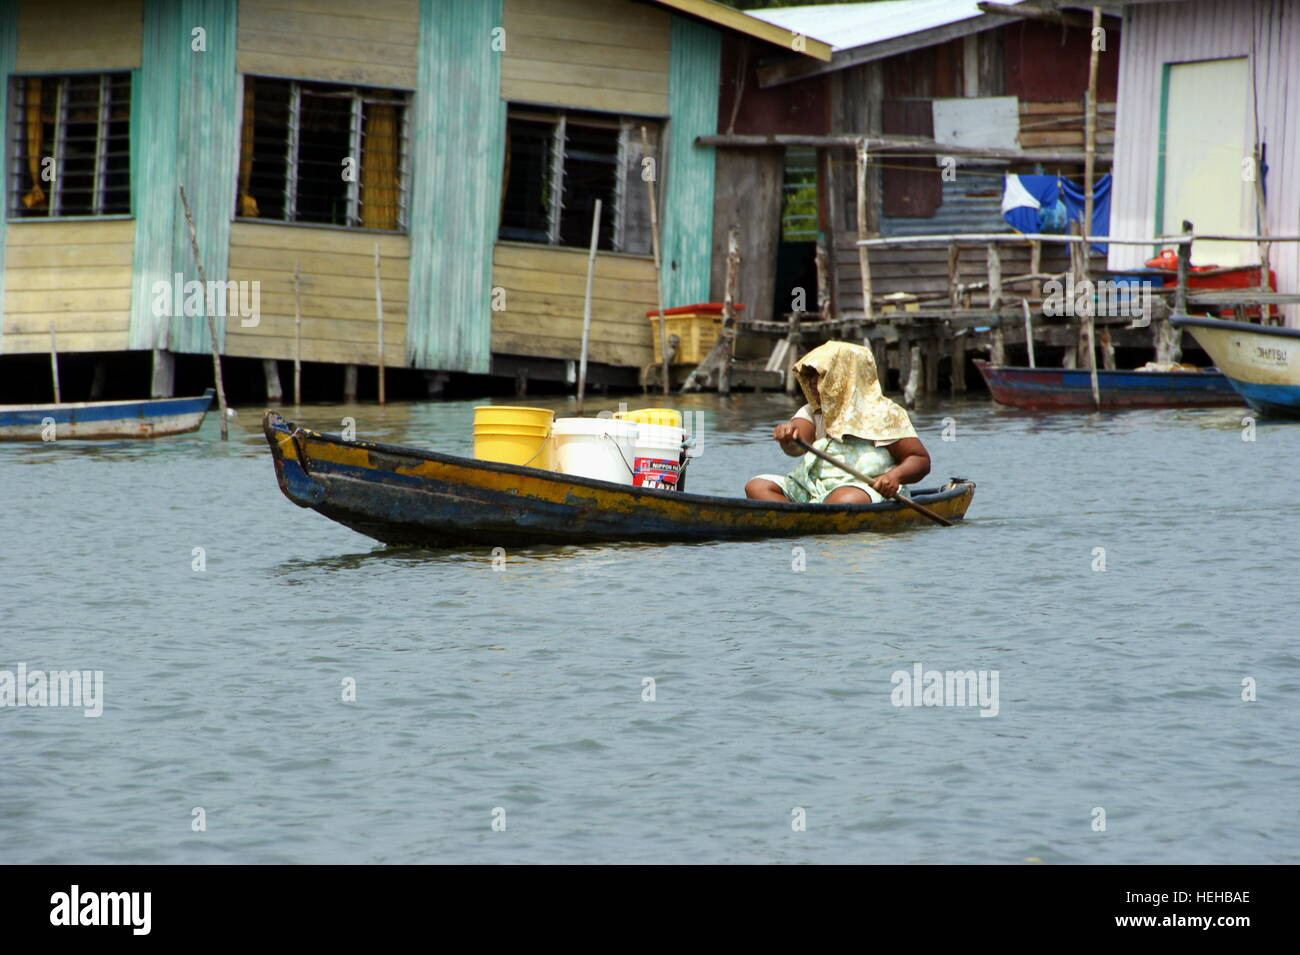 Woman carries a cargo boat. Fishing village on the water.  Mengkabong river, Kota Kinabalu, Sabah, Borneo, Malaysia. - Stock Image